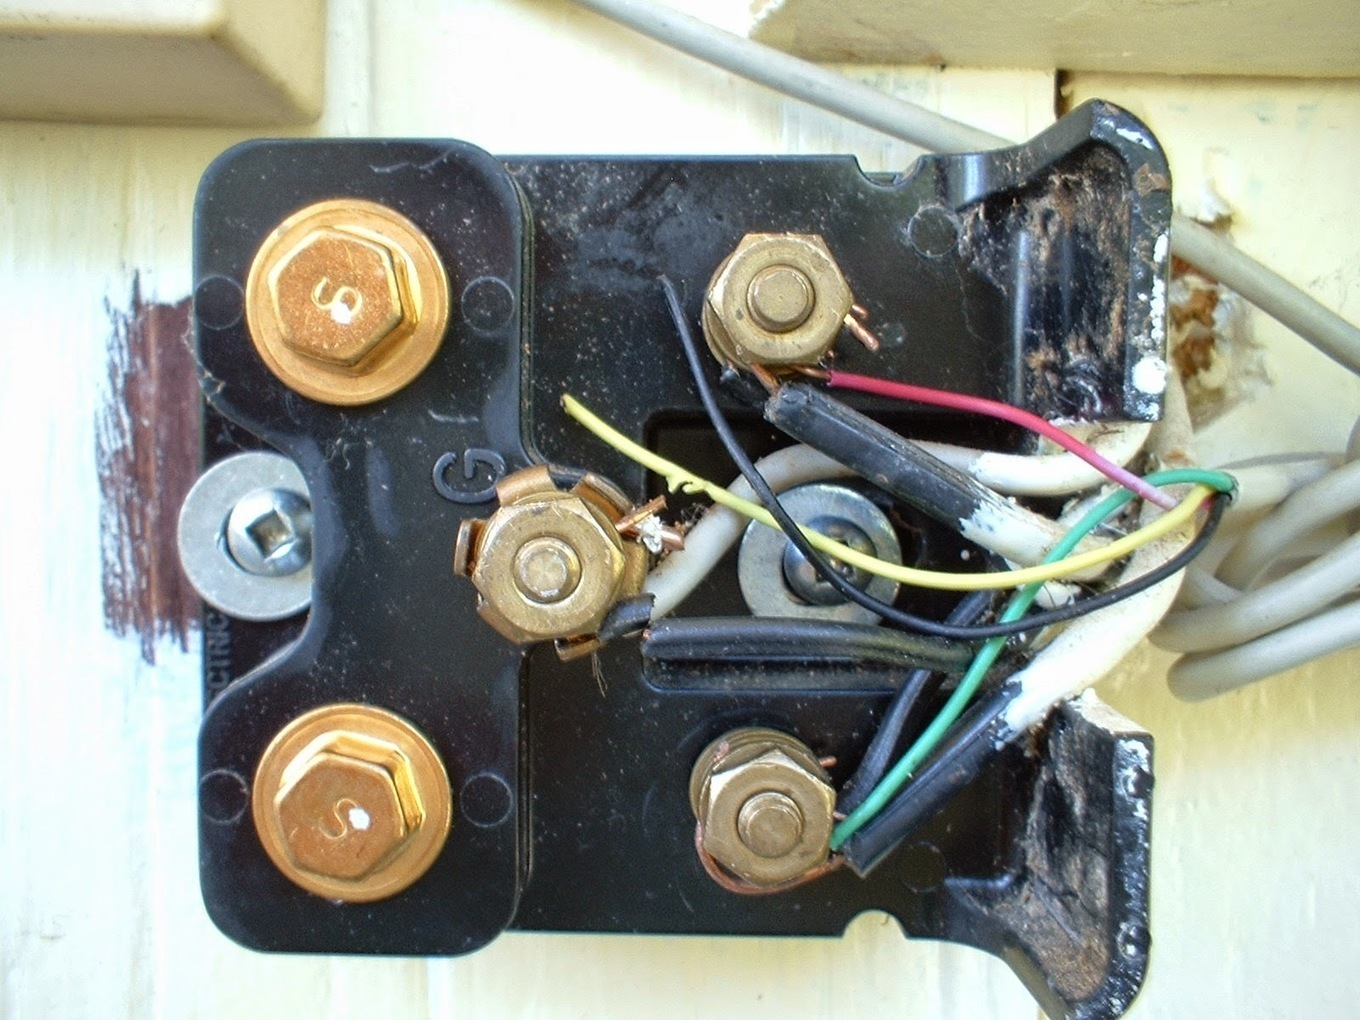 telephone junction box wiring diagram tin bismuth phase demarc extension | scoop.it